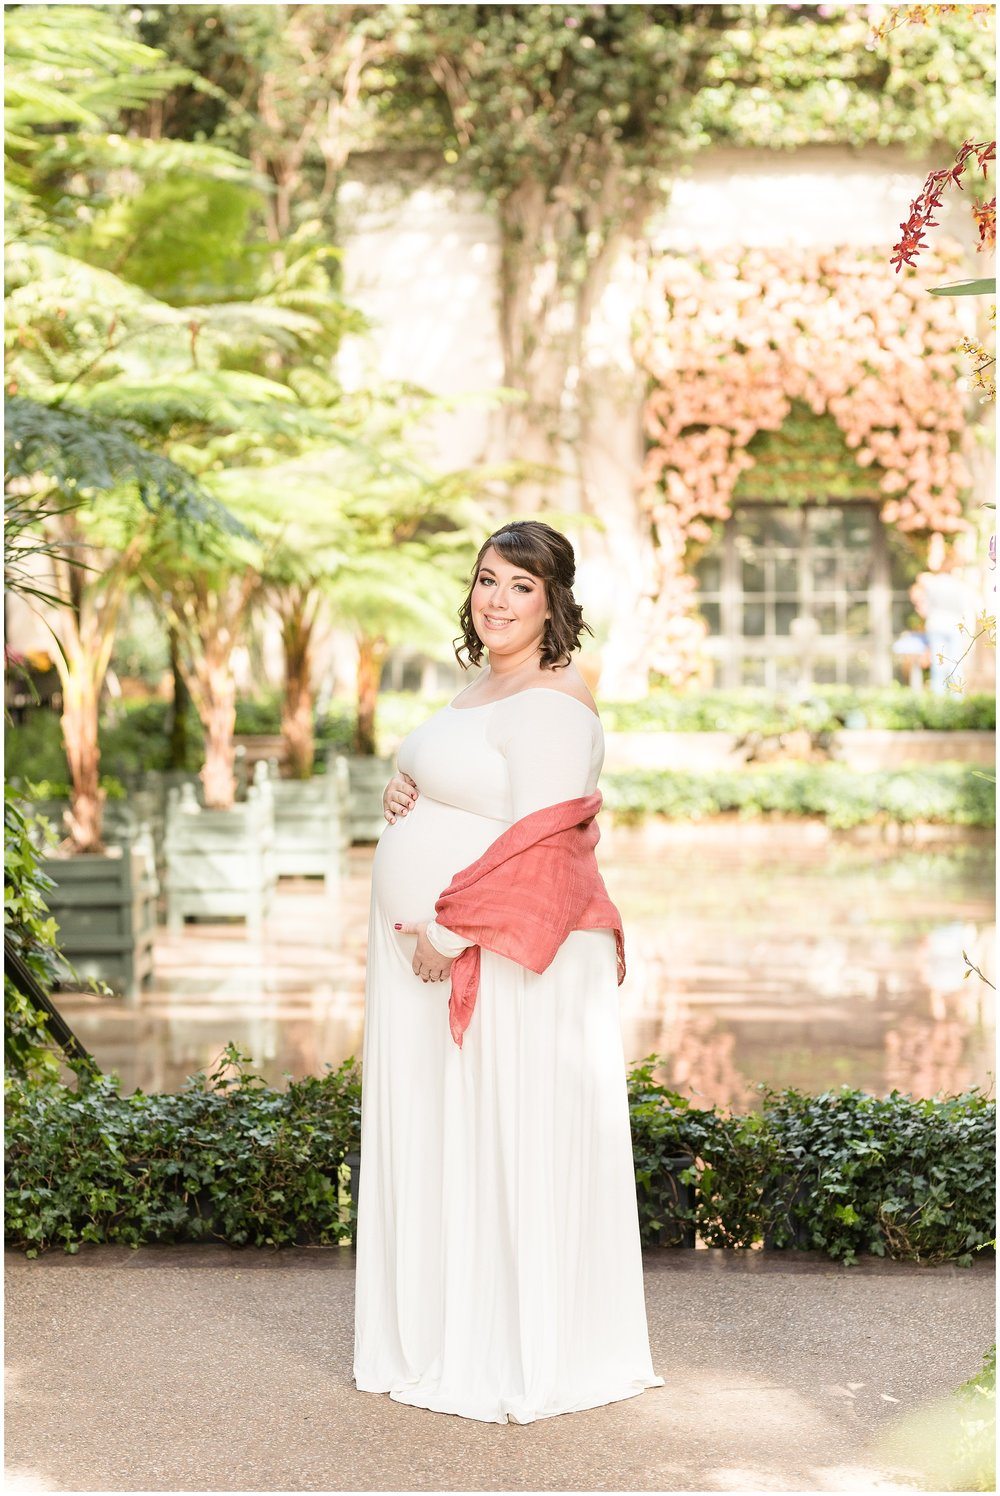 Longwood-gardens-maternity-photos-207.jpg